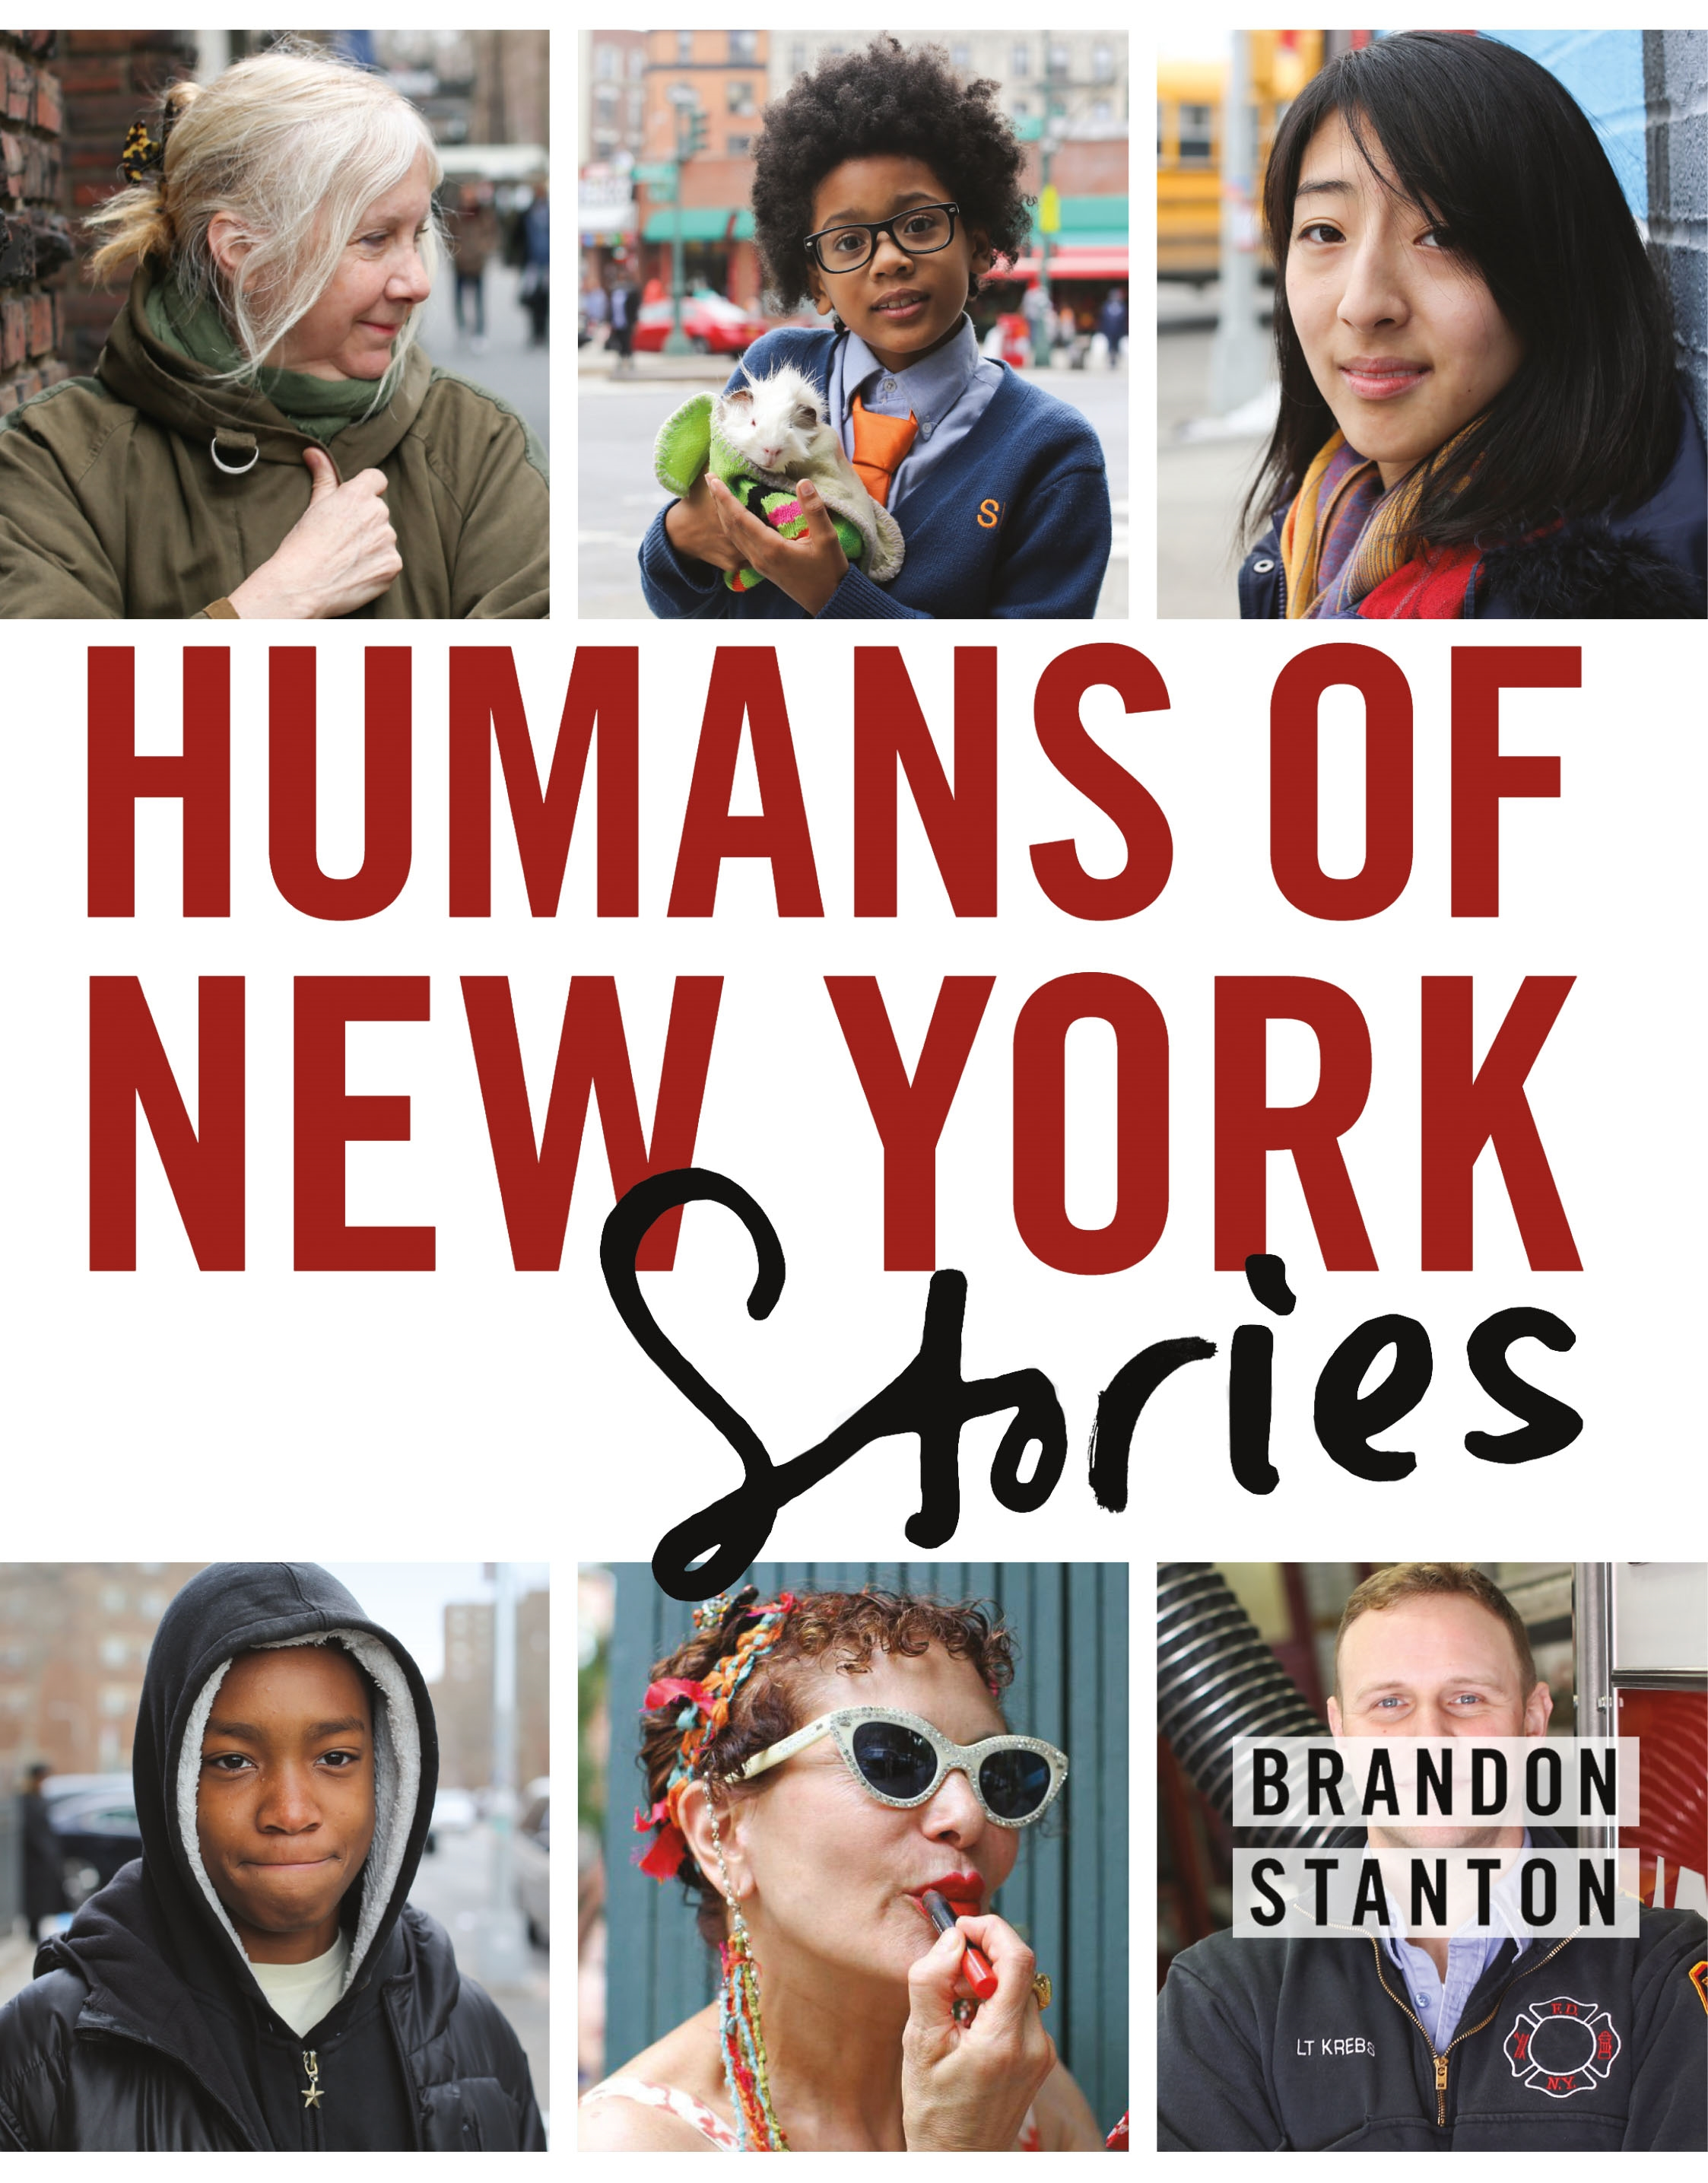 Humans of New York: The Stories by Brandon Stanton, ISBN: 9781250058904